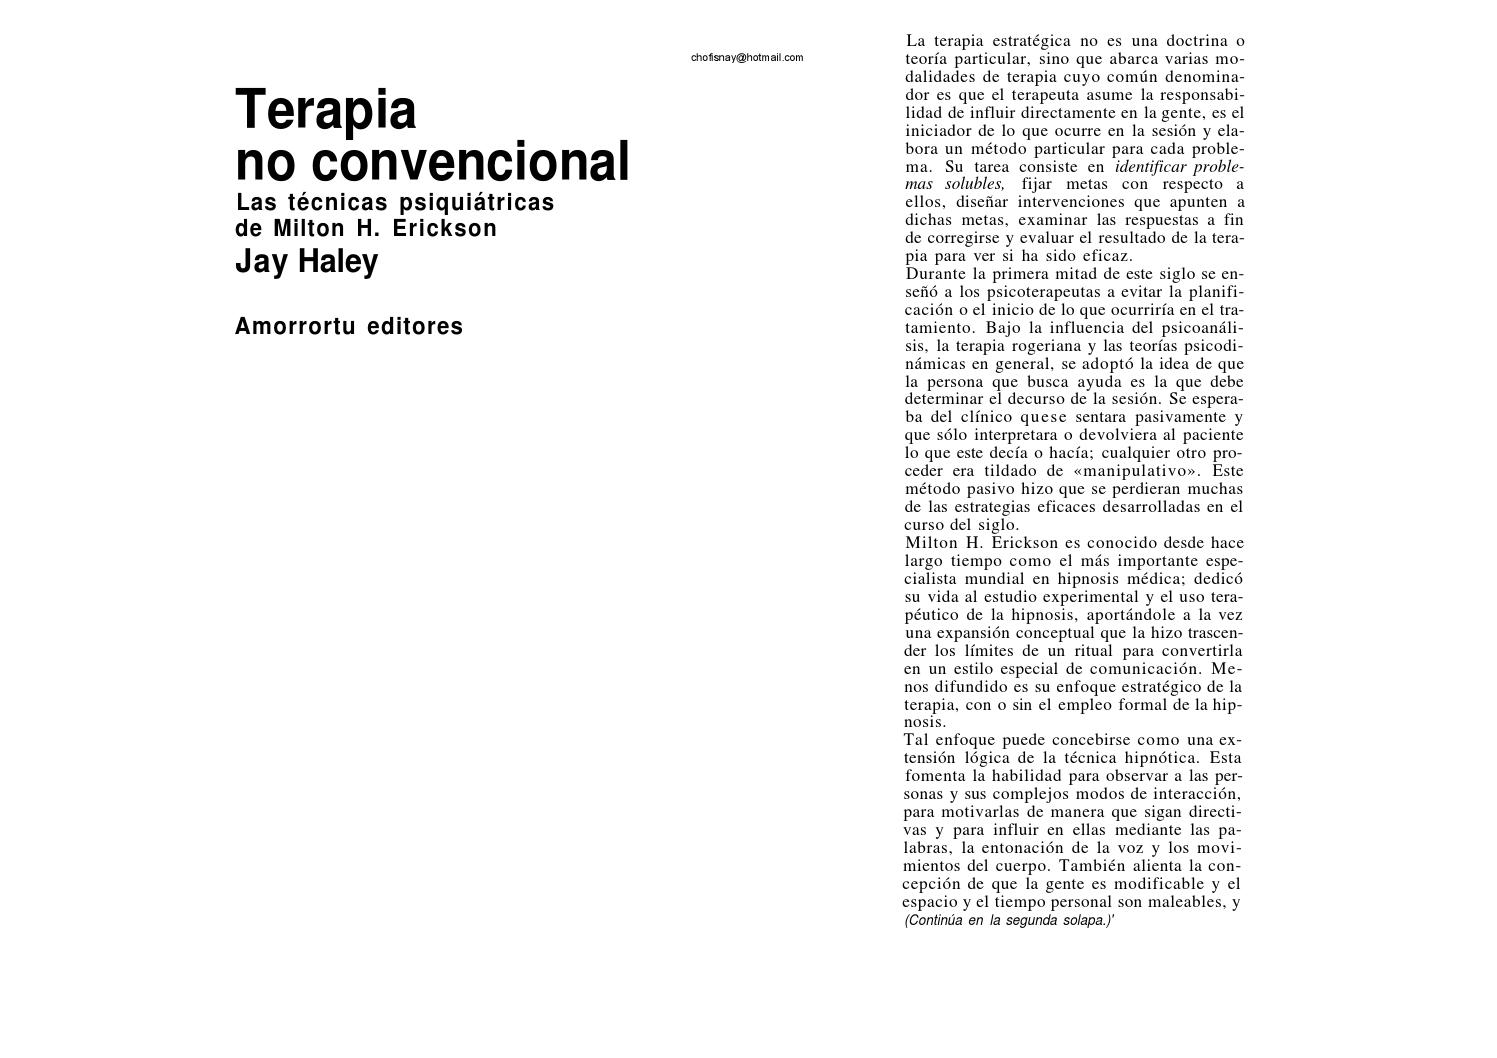 56280792 jay haley terapia no convencional by Charly Udl - issuu